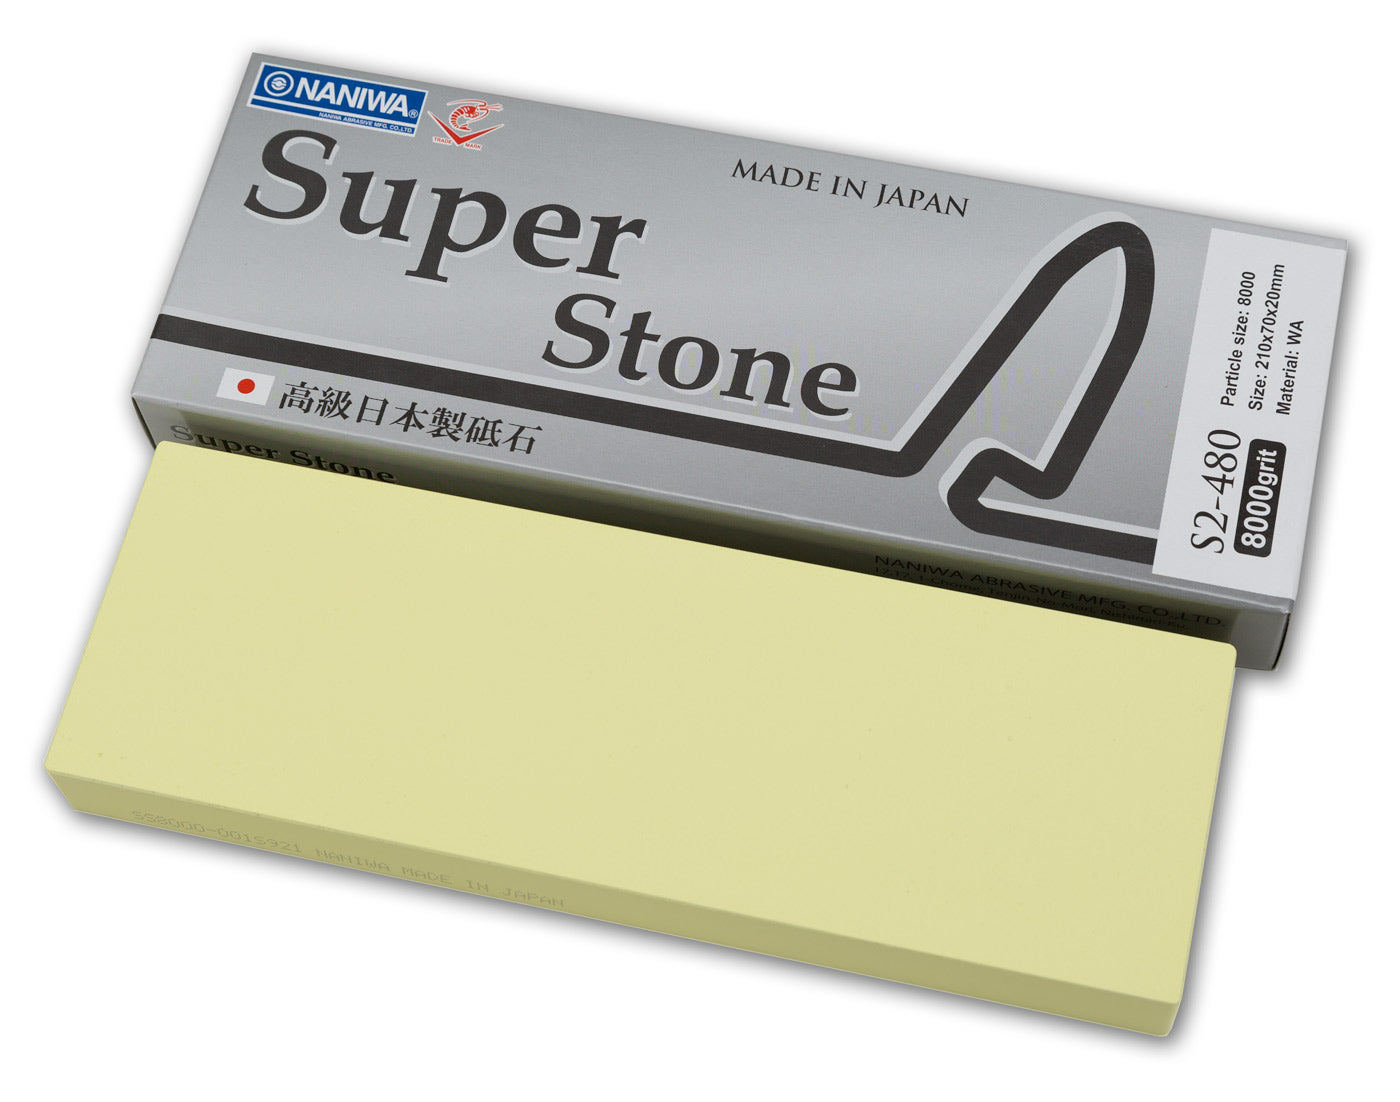 Naniwa Super-Stone Japanese Whetstone Sharpening Stone, 8000 grit